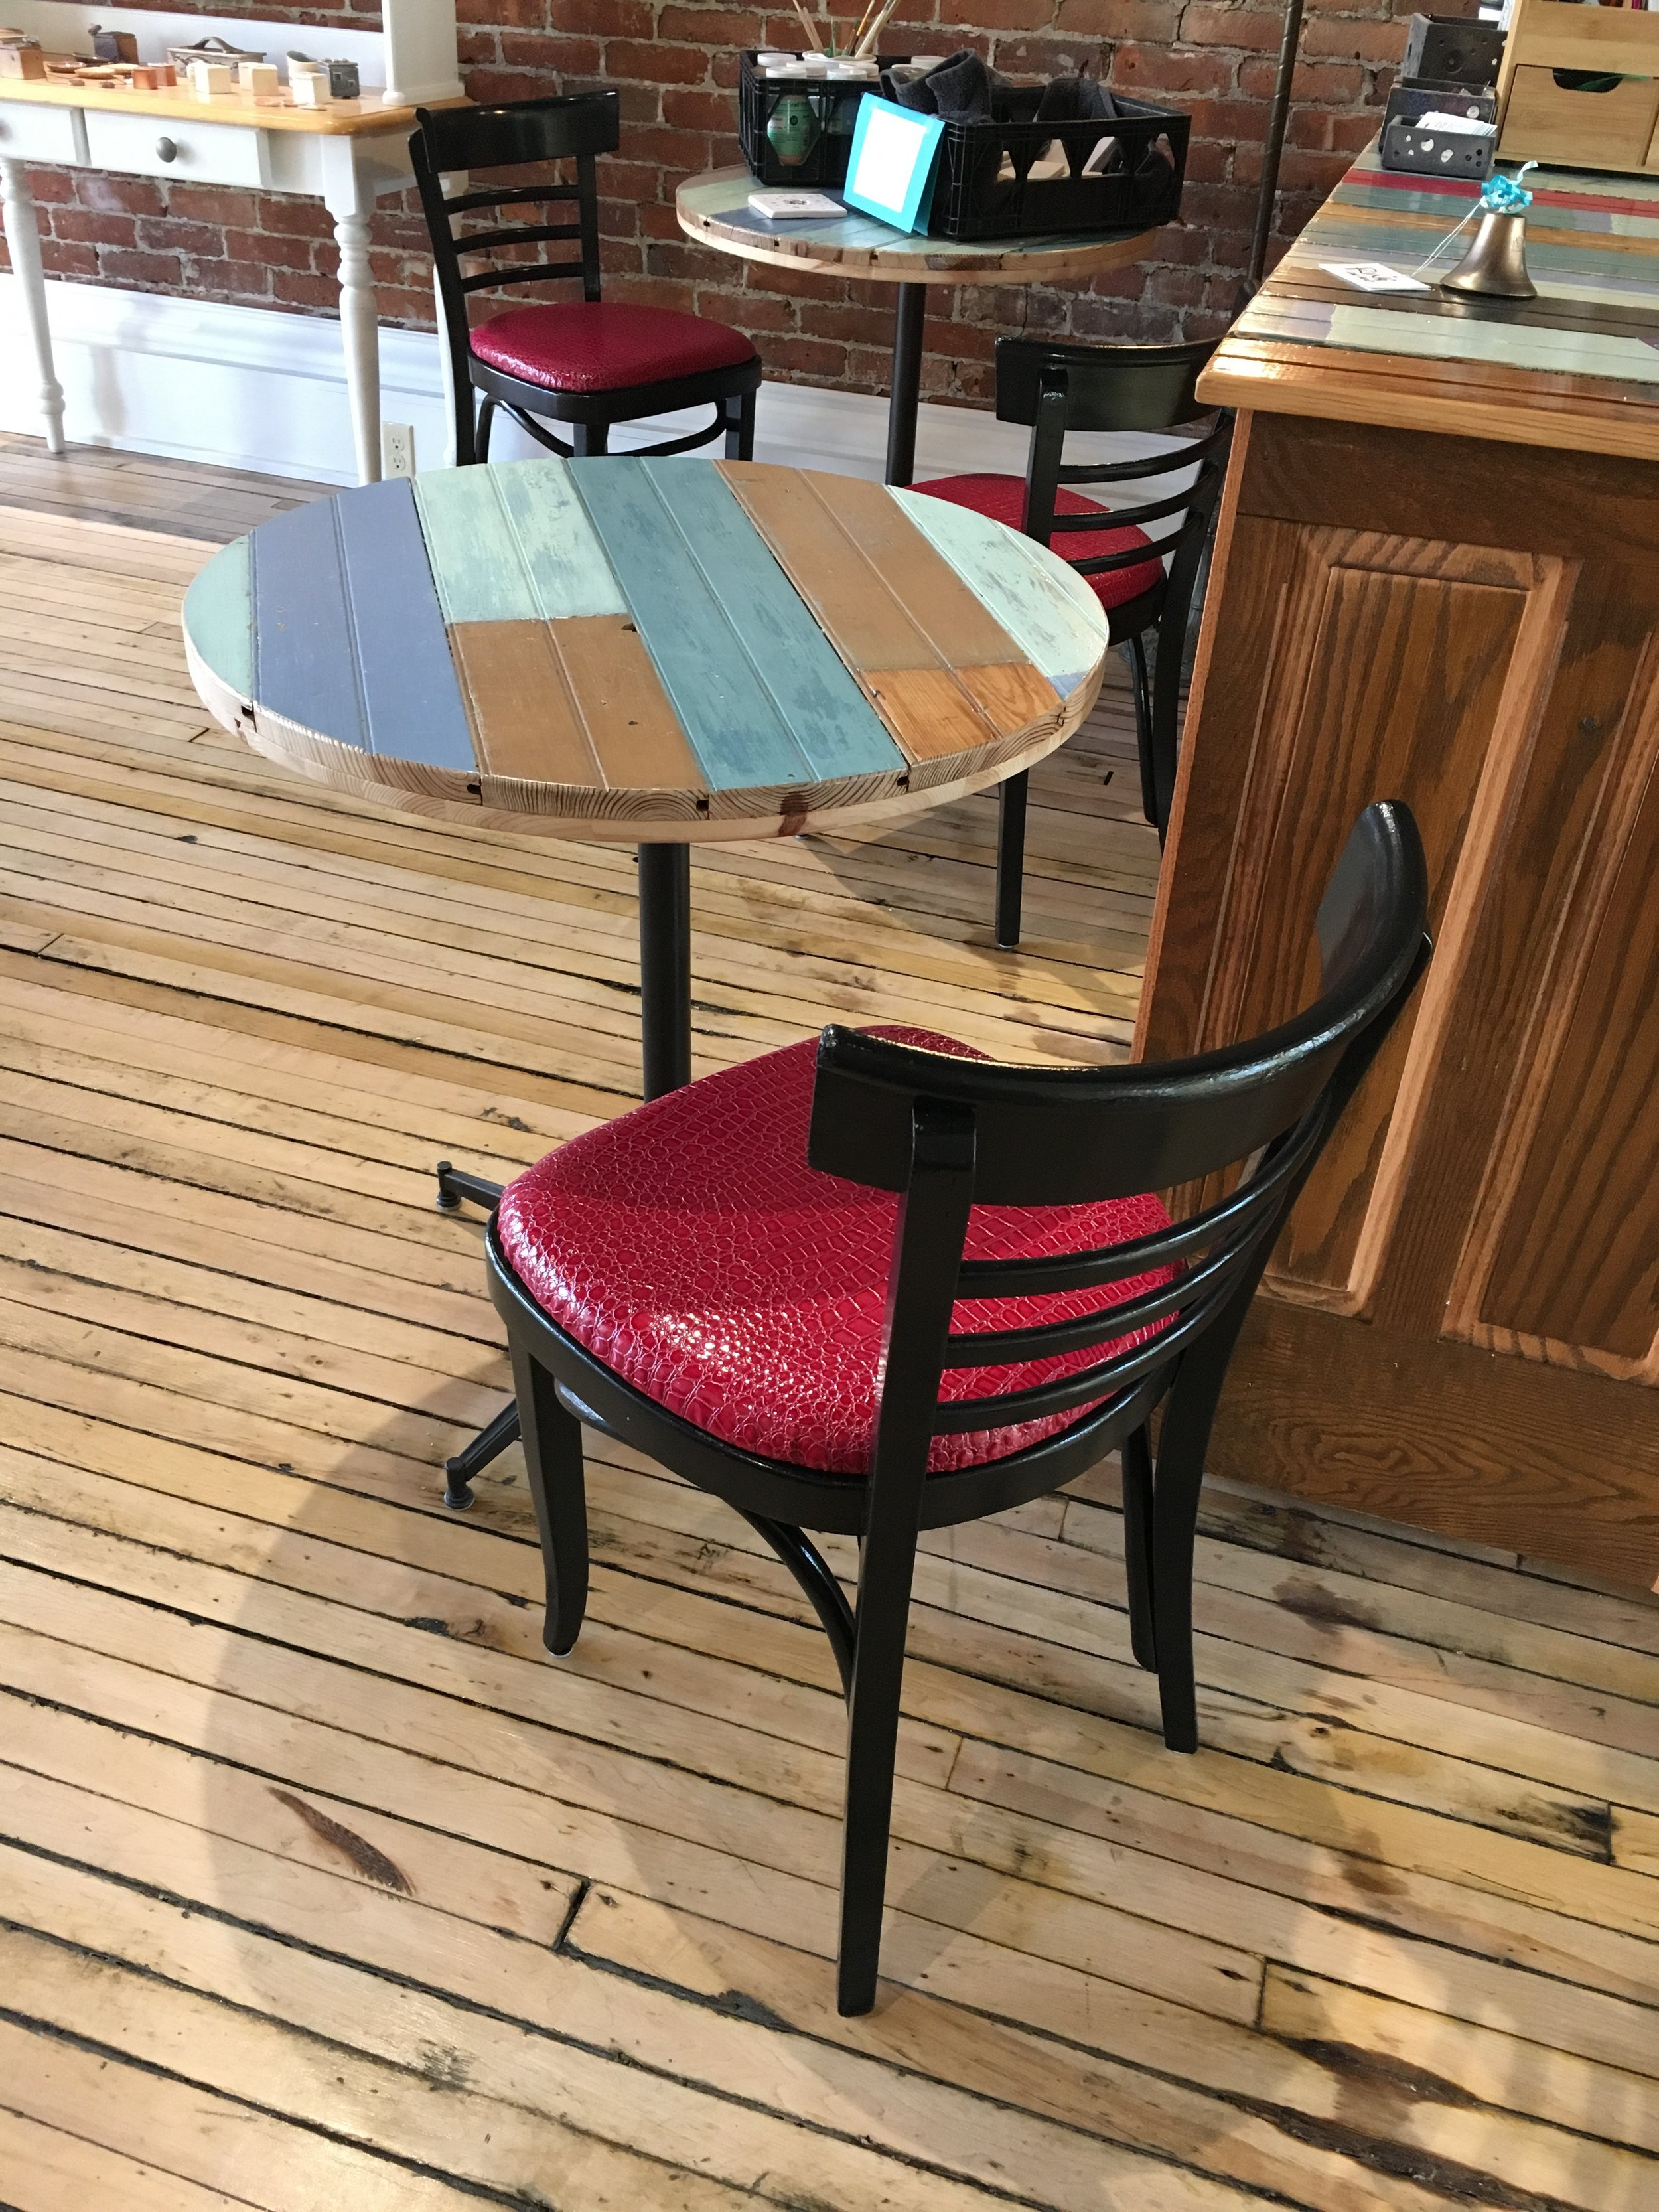 Re-painted, re-upholstered road chairs